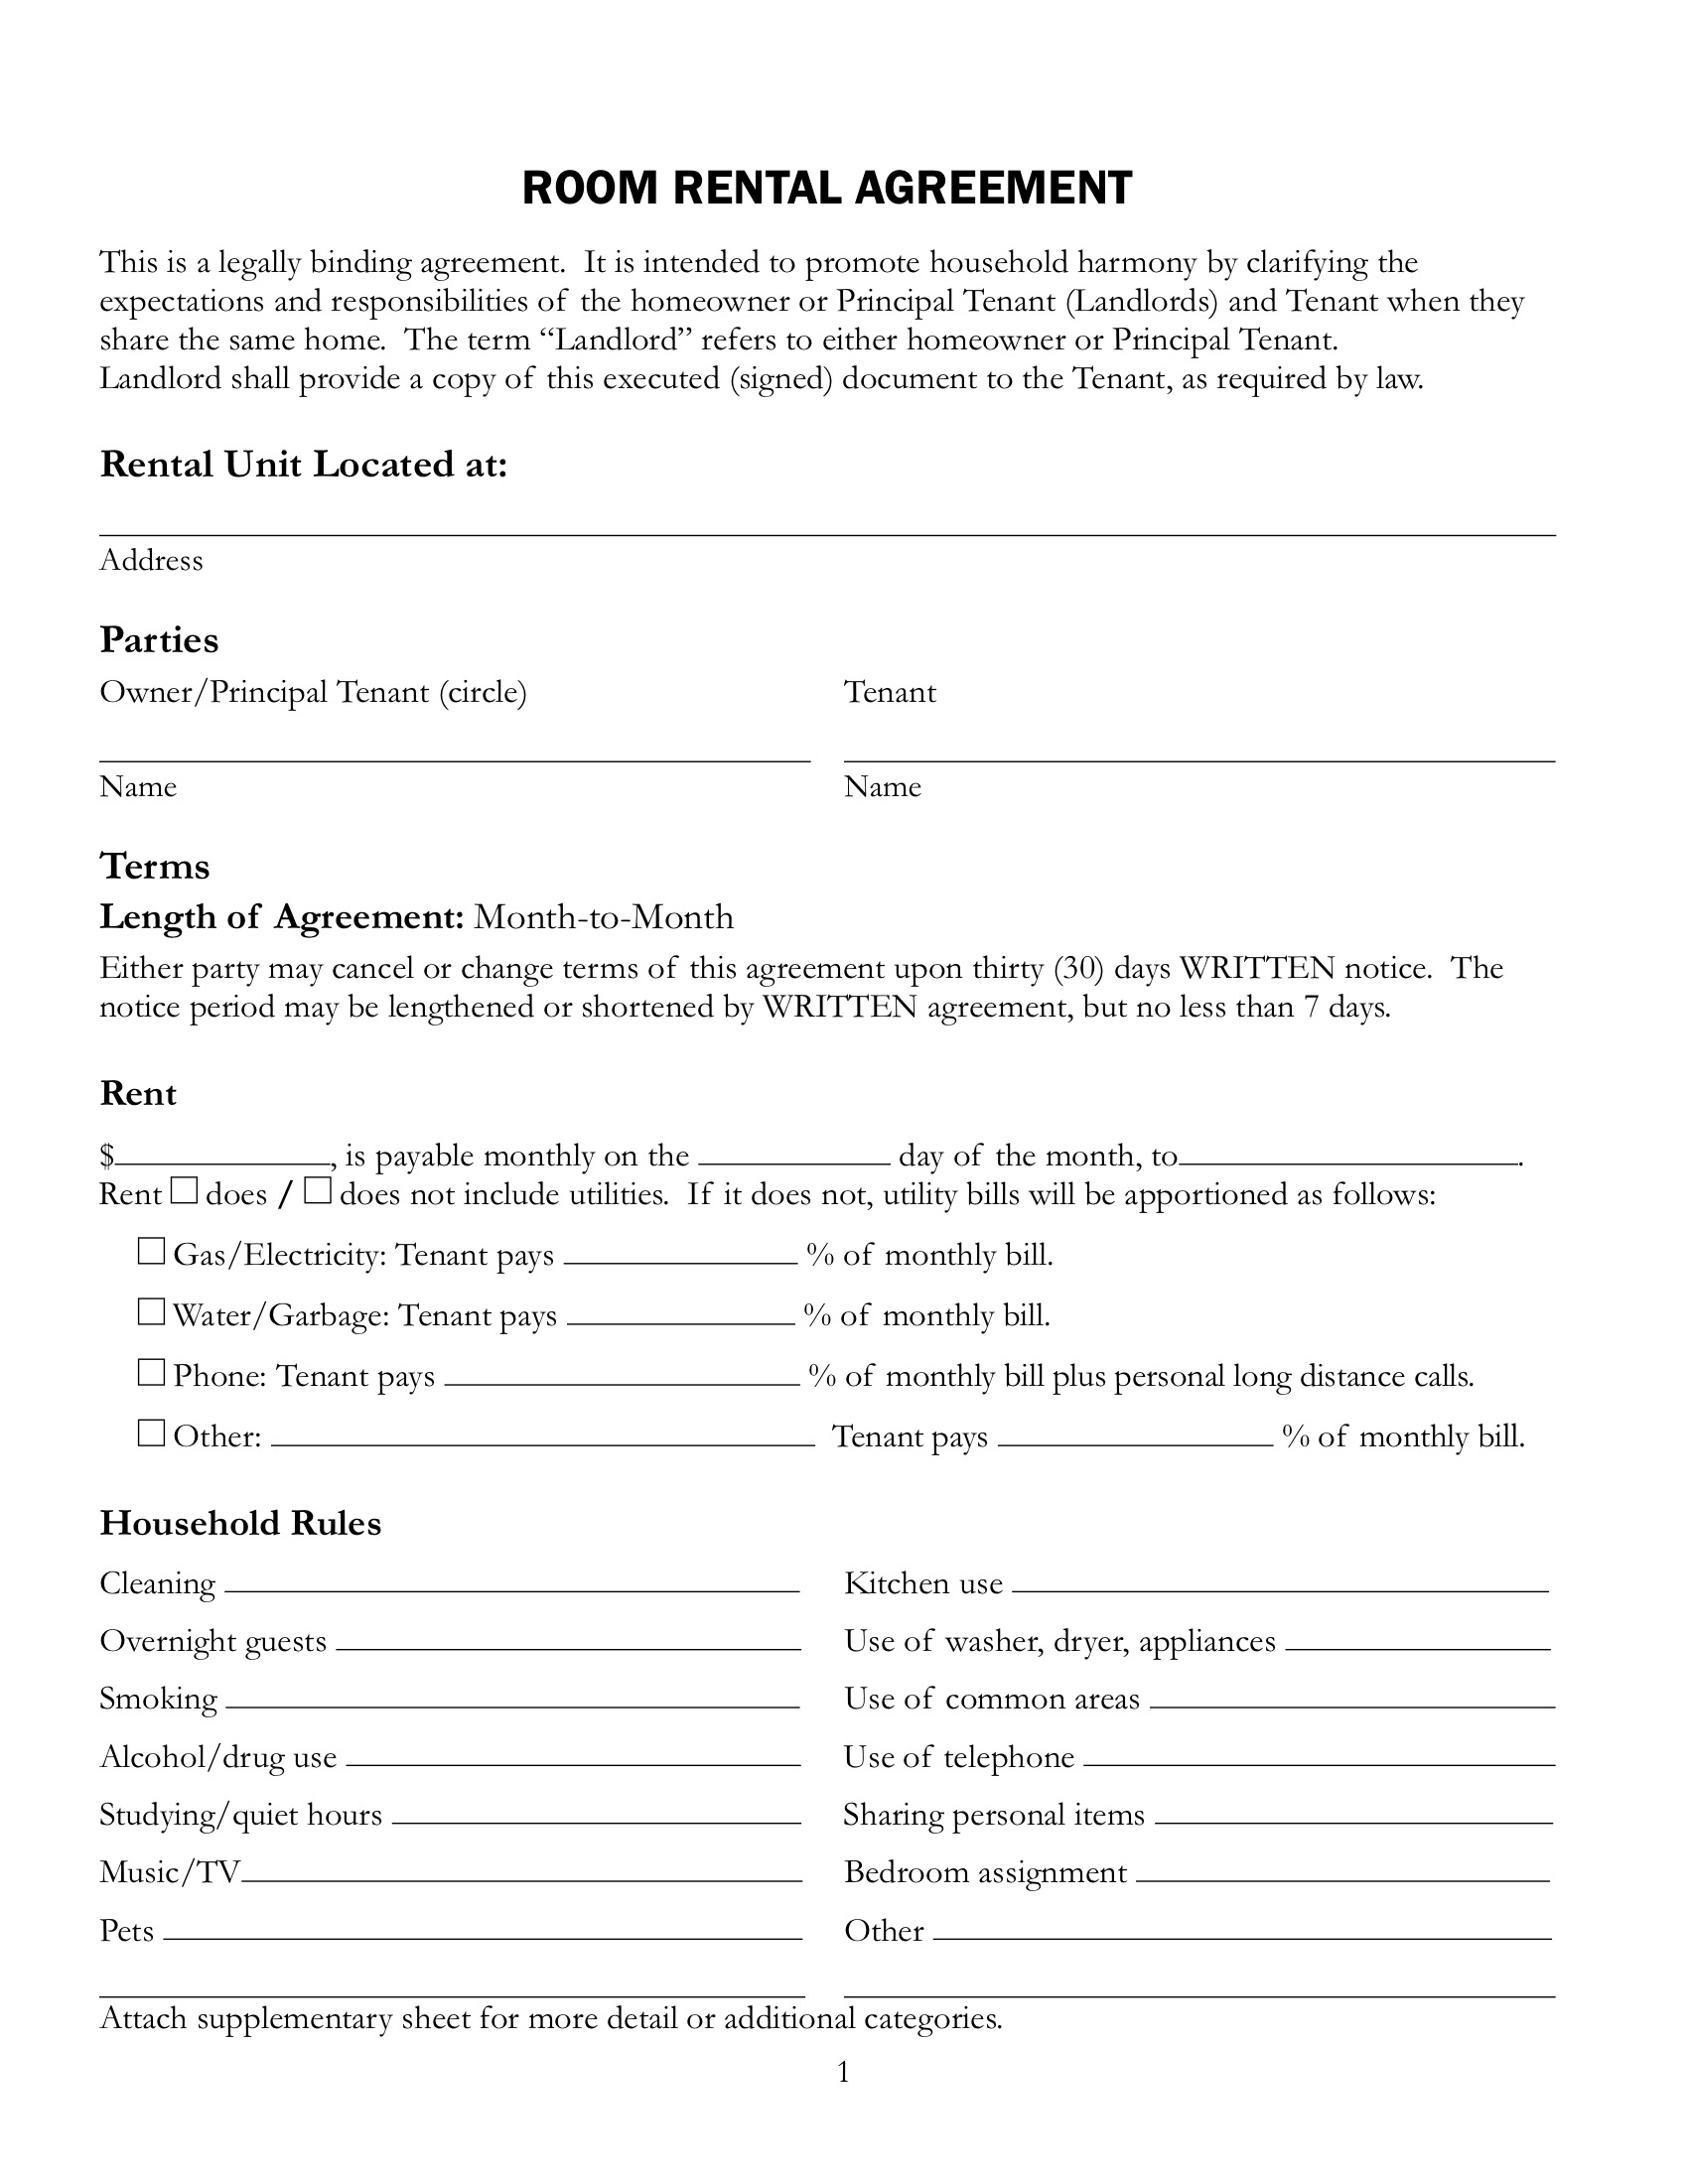 Rent A Room Contract Project Executive Summary Template Printable . Contact    801 NATIONAL CITY BLVD.   NATIONAL CITY